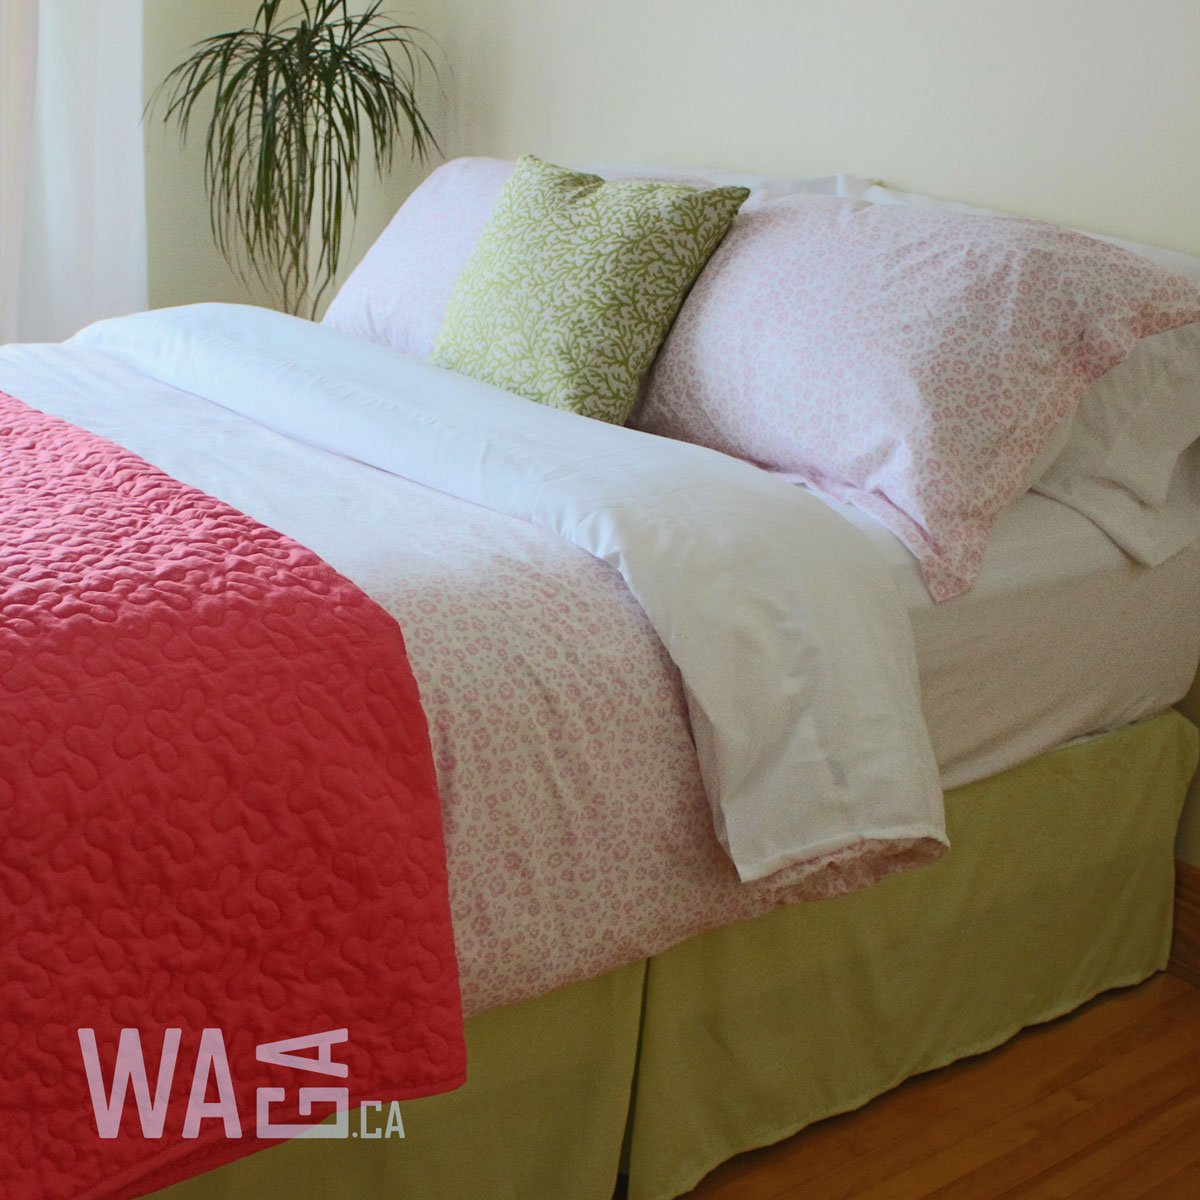 Waga Bed Skirt - Lime Green, King (78'' x 80'') by Waga (Image #2)